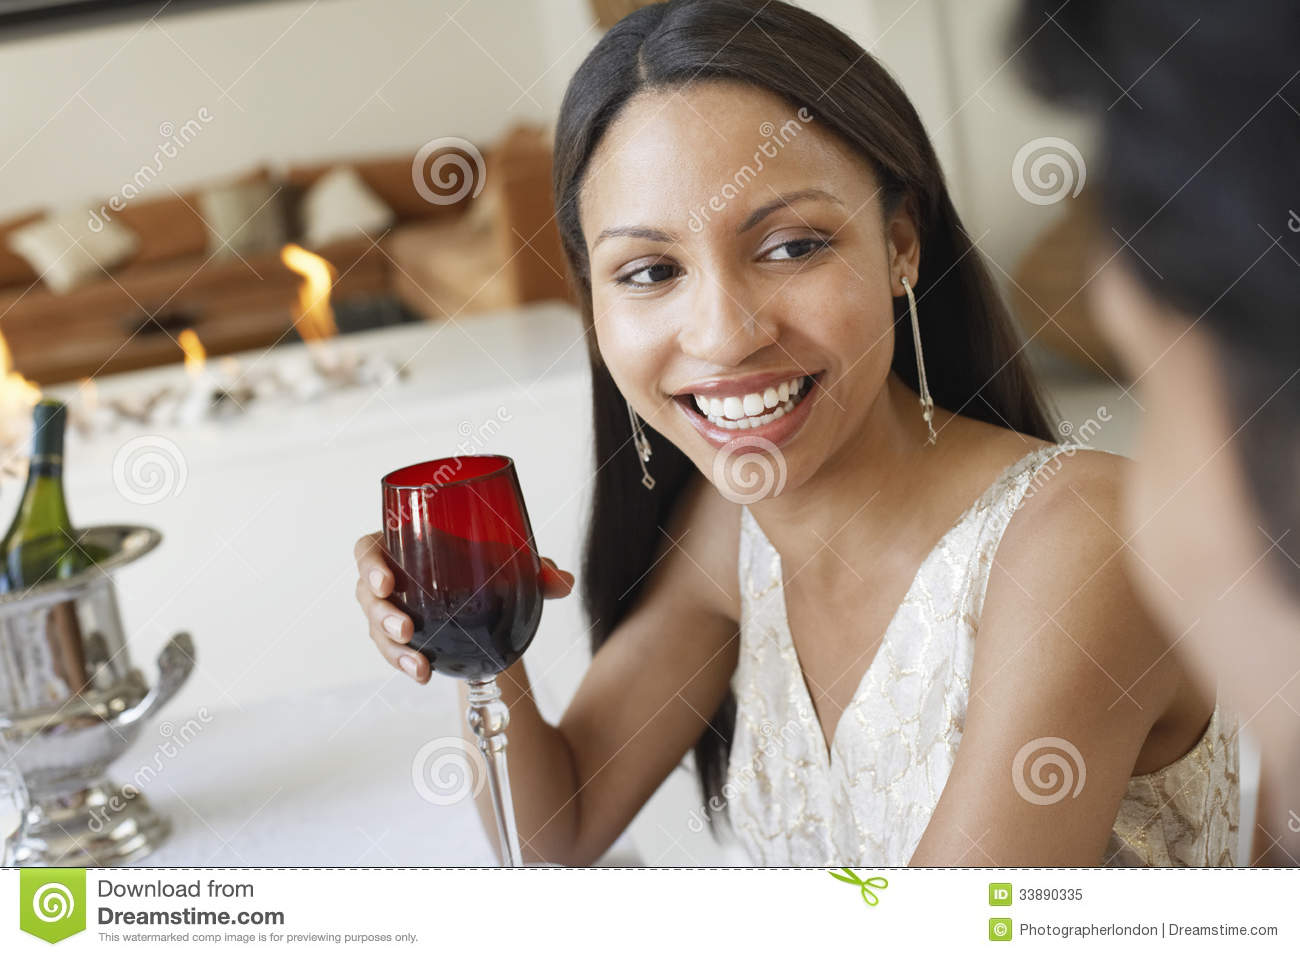 Woman Holding Red Wine Glass At Dinner Party Stock Image ...